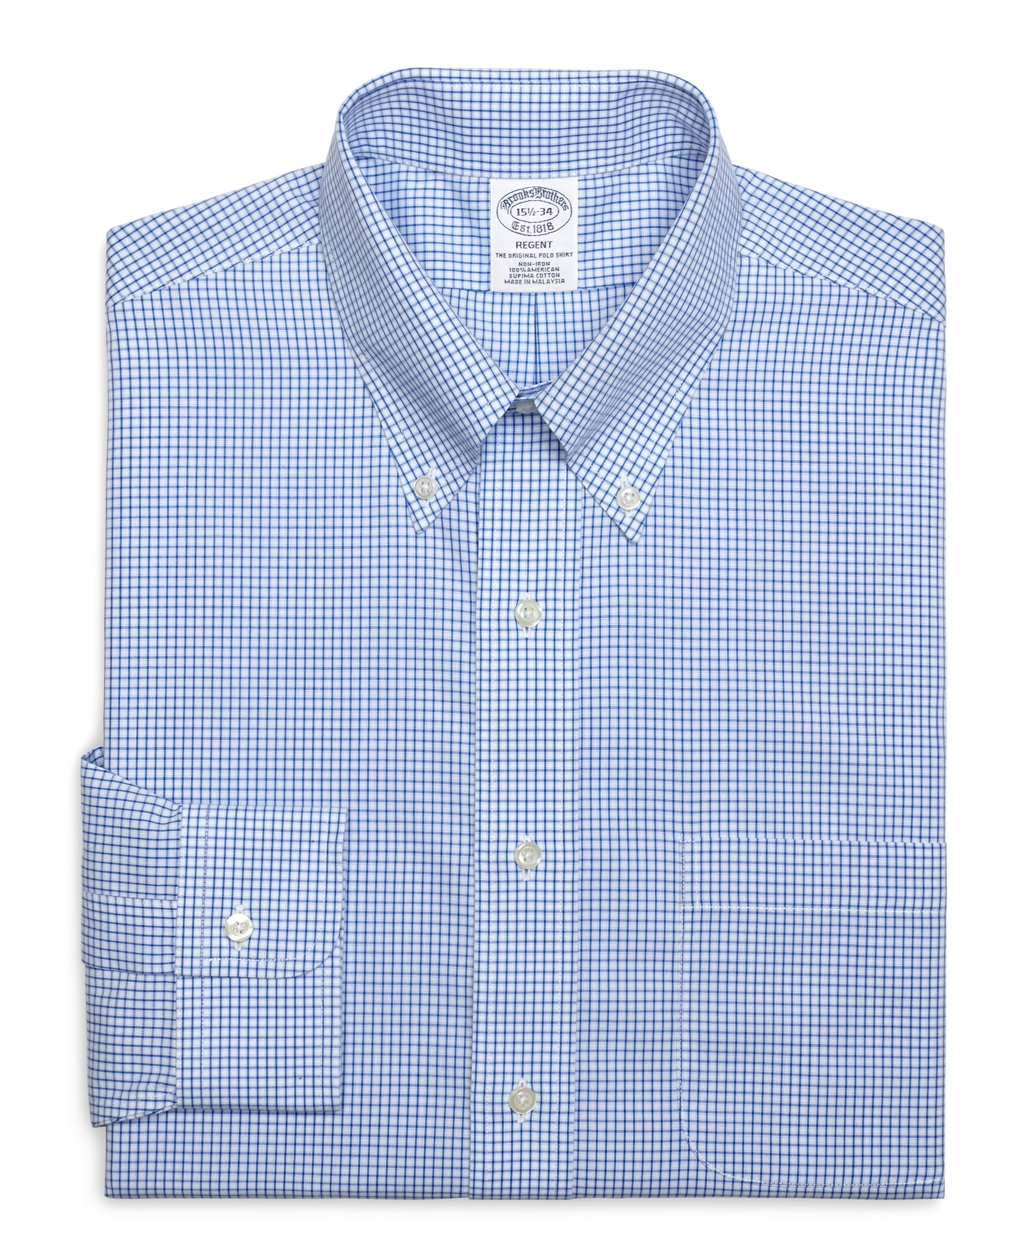 Brooks brothers non iron traditional fit small frame for Brooks brothers non iron shirts review